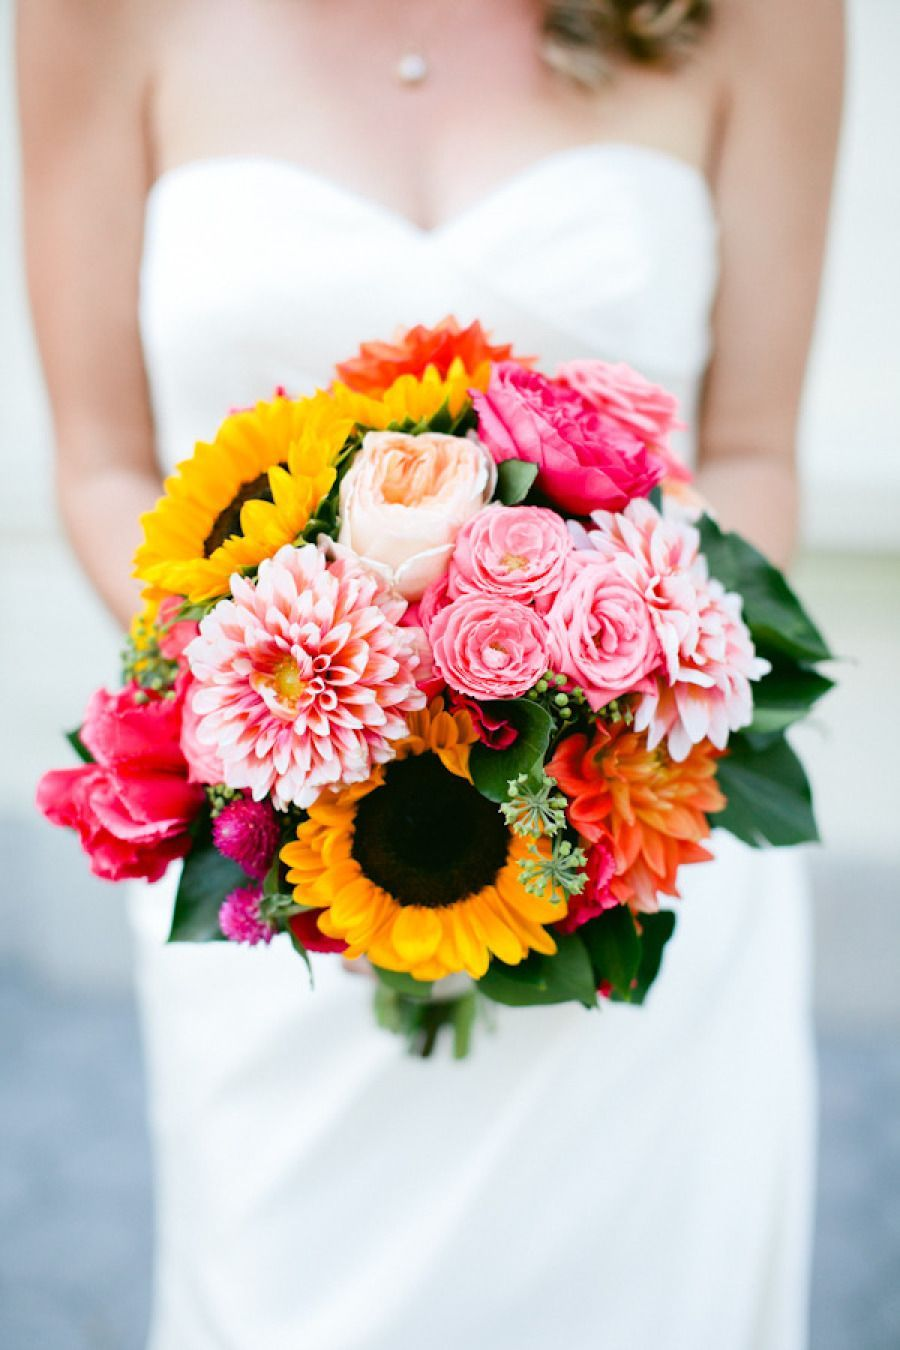 Perfect Fall Wedding Bouquet Ideas for Autumn Brides The bouquet